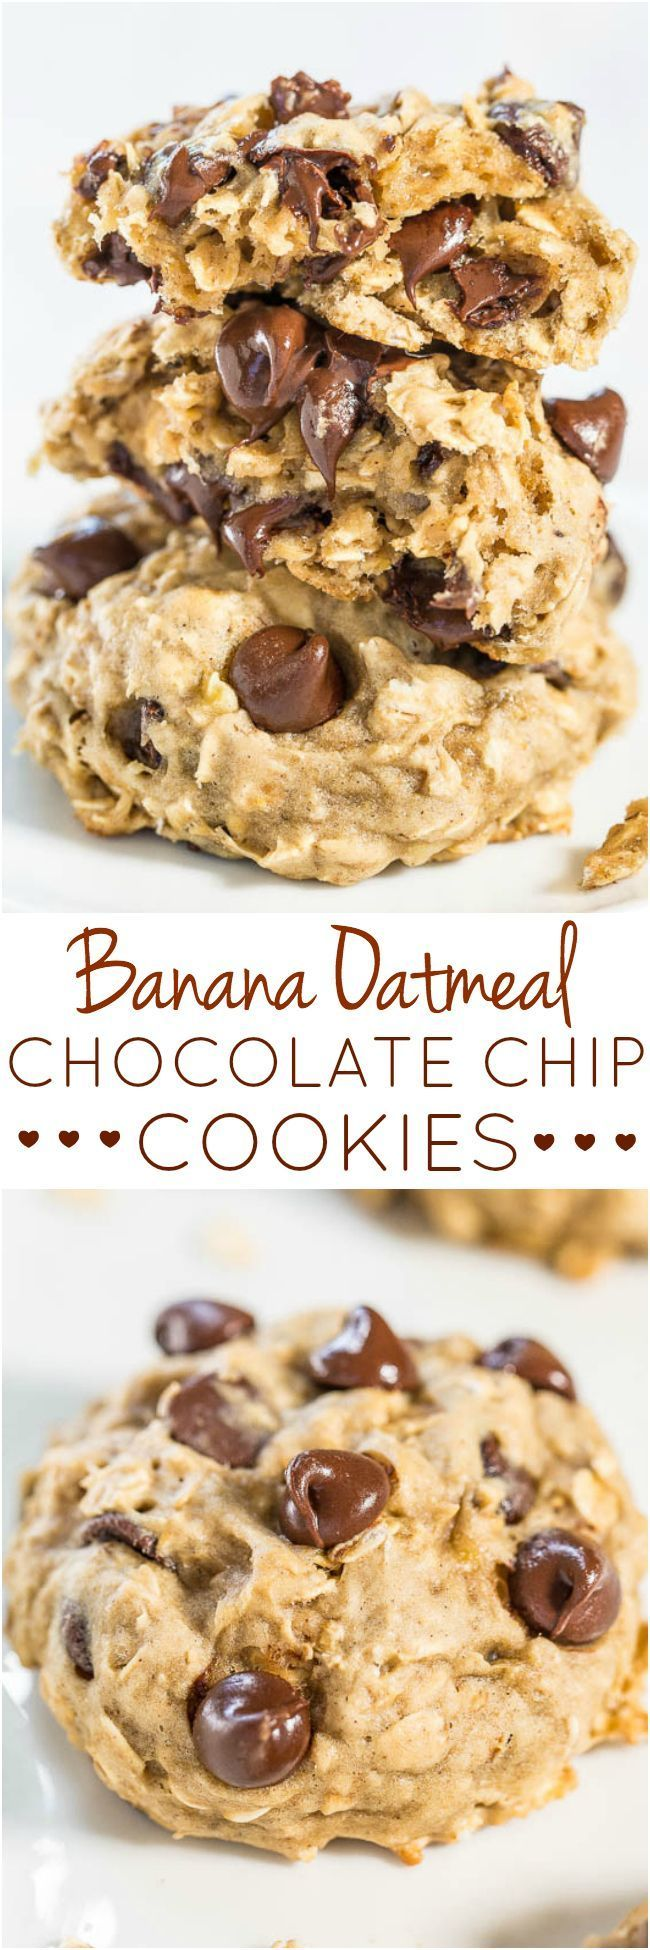 wholesale jewelry stores Banana Oatmeal Chocolate Chip Cookies  Like oatmeal cookies but with banana to keep them healthier So soft chewy and you   ll never miss the butter